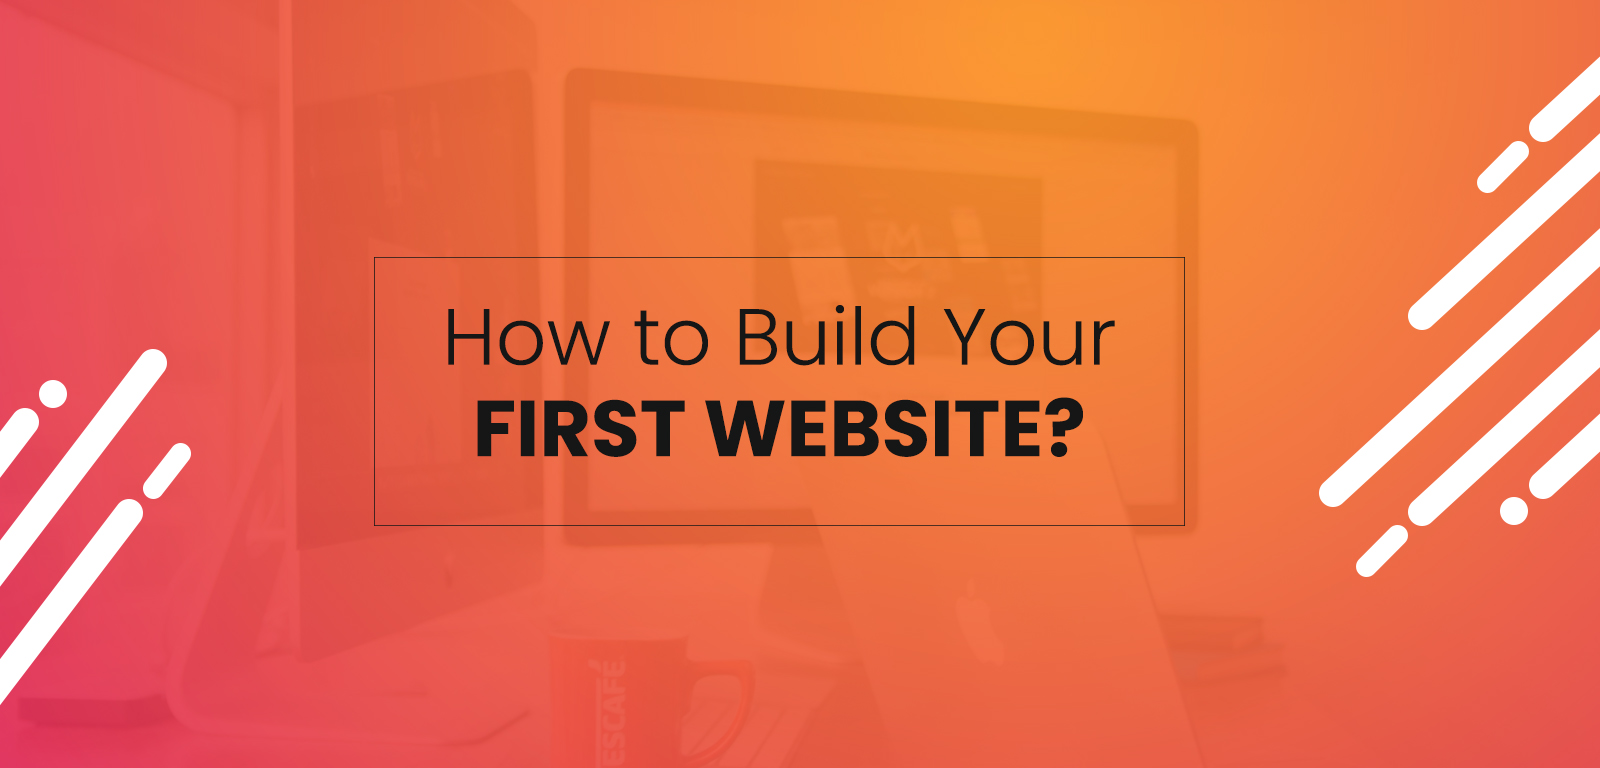 How to build your first website?